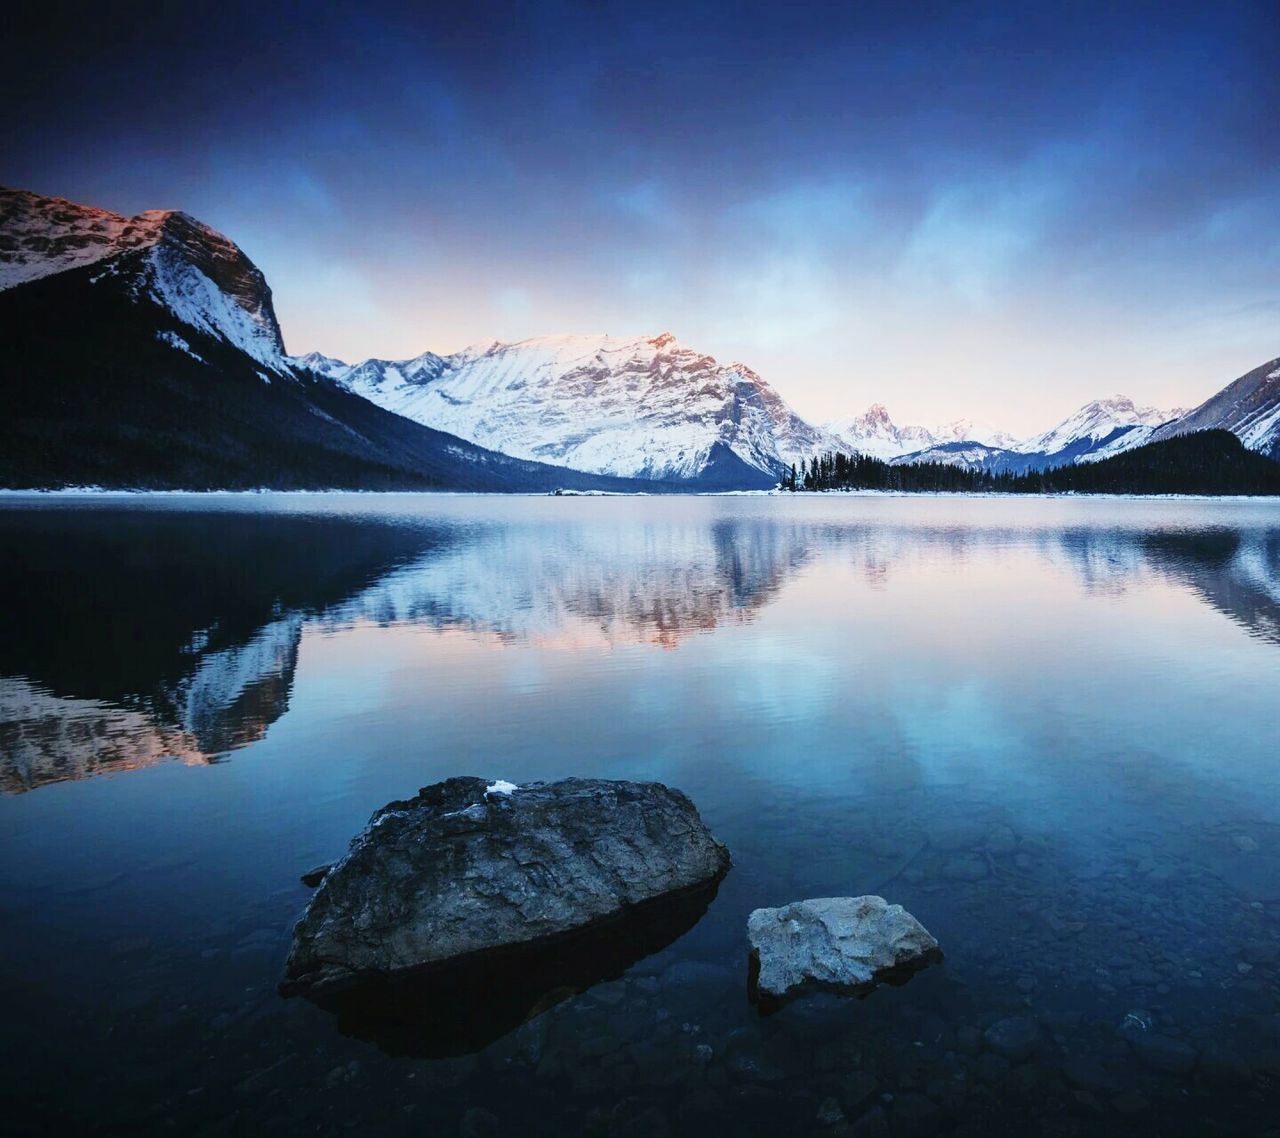 mountain, lake, scenics, water, mountain range, snow, beauty in nature, reflection, tranquil scene, nature, cold temperature, majestic, tranquility, winter, idyllic, snowcapped mountain, no people, sky, rock - object, outdoors, mountain peak, travel destinations, frozen, rocky mountains, landscape, day, iceberg